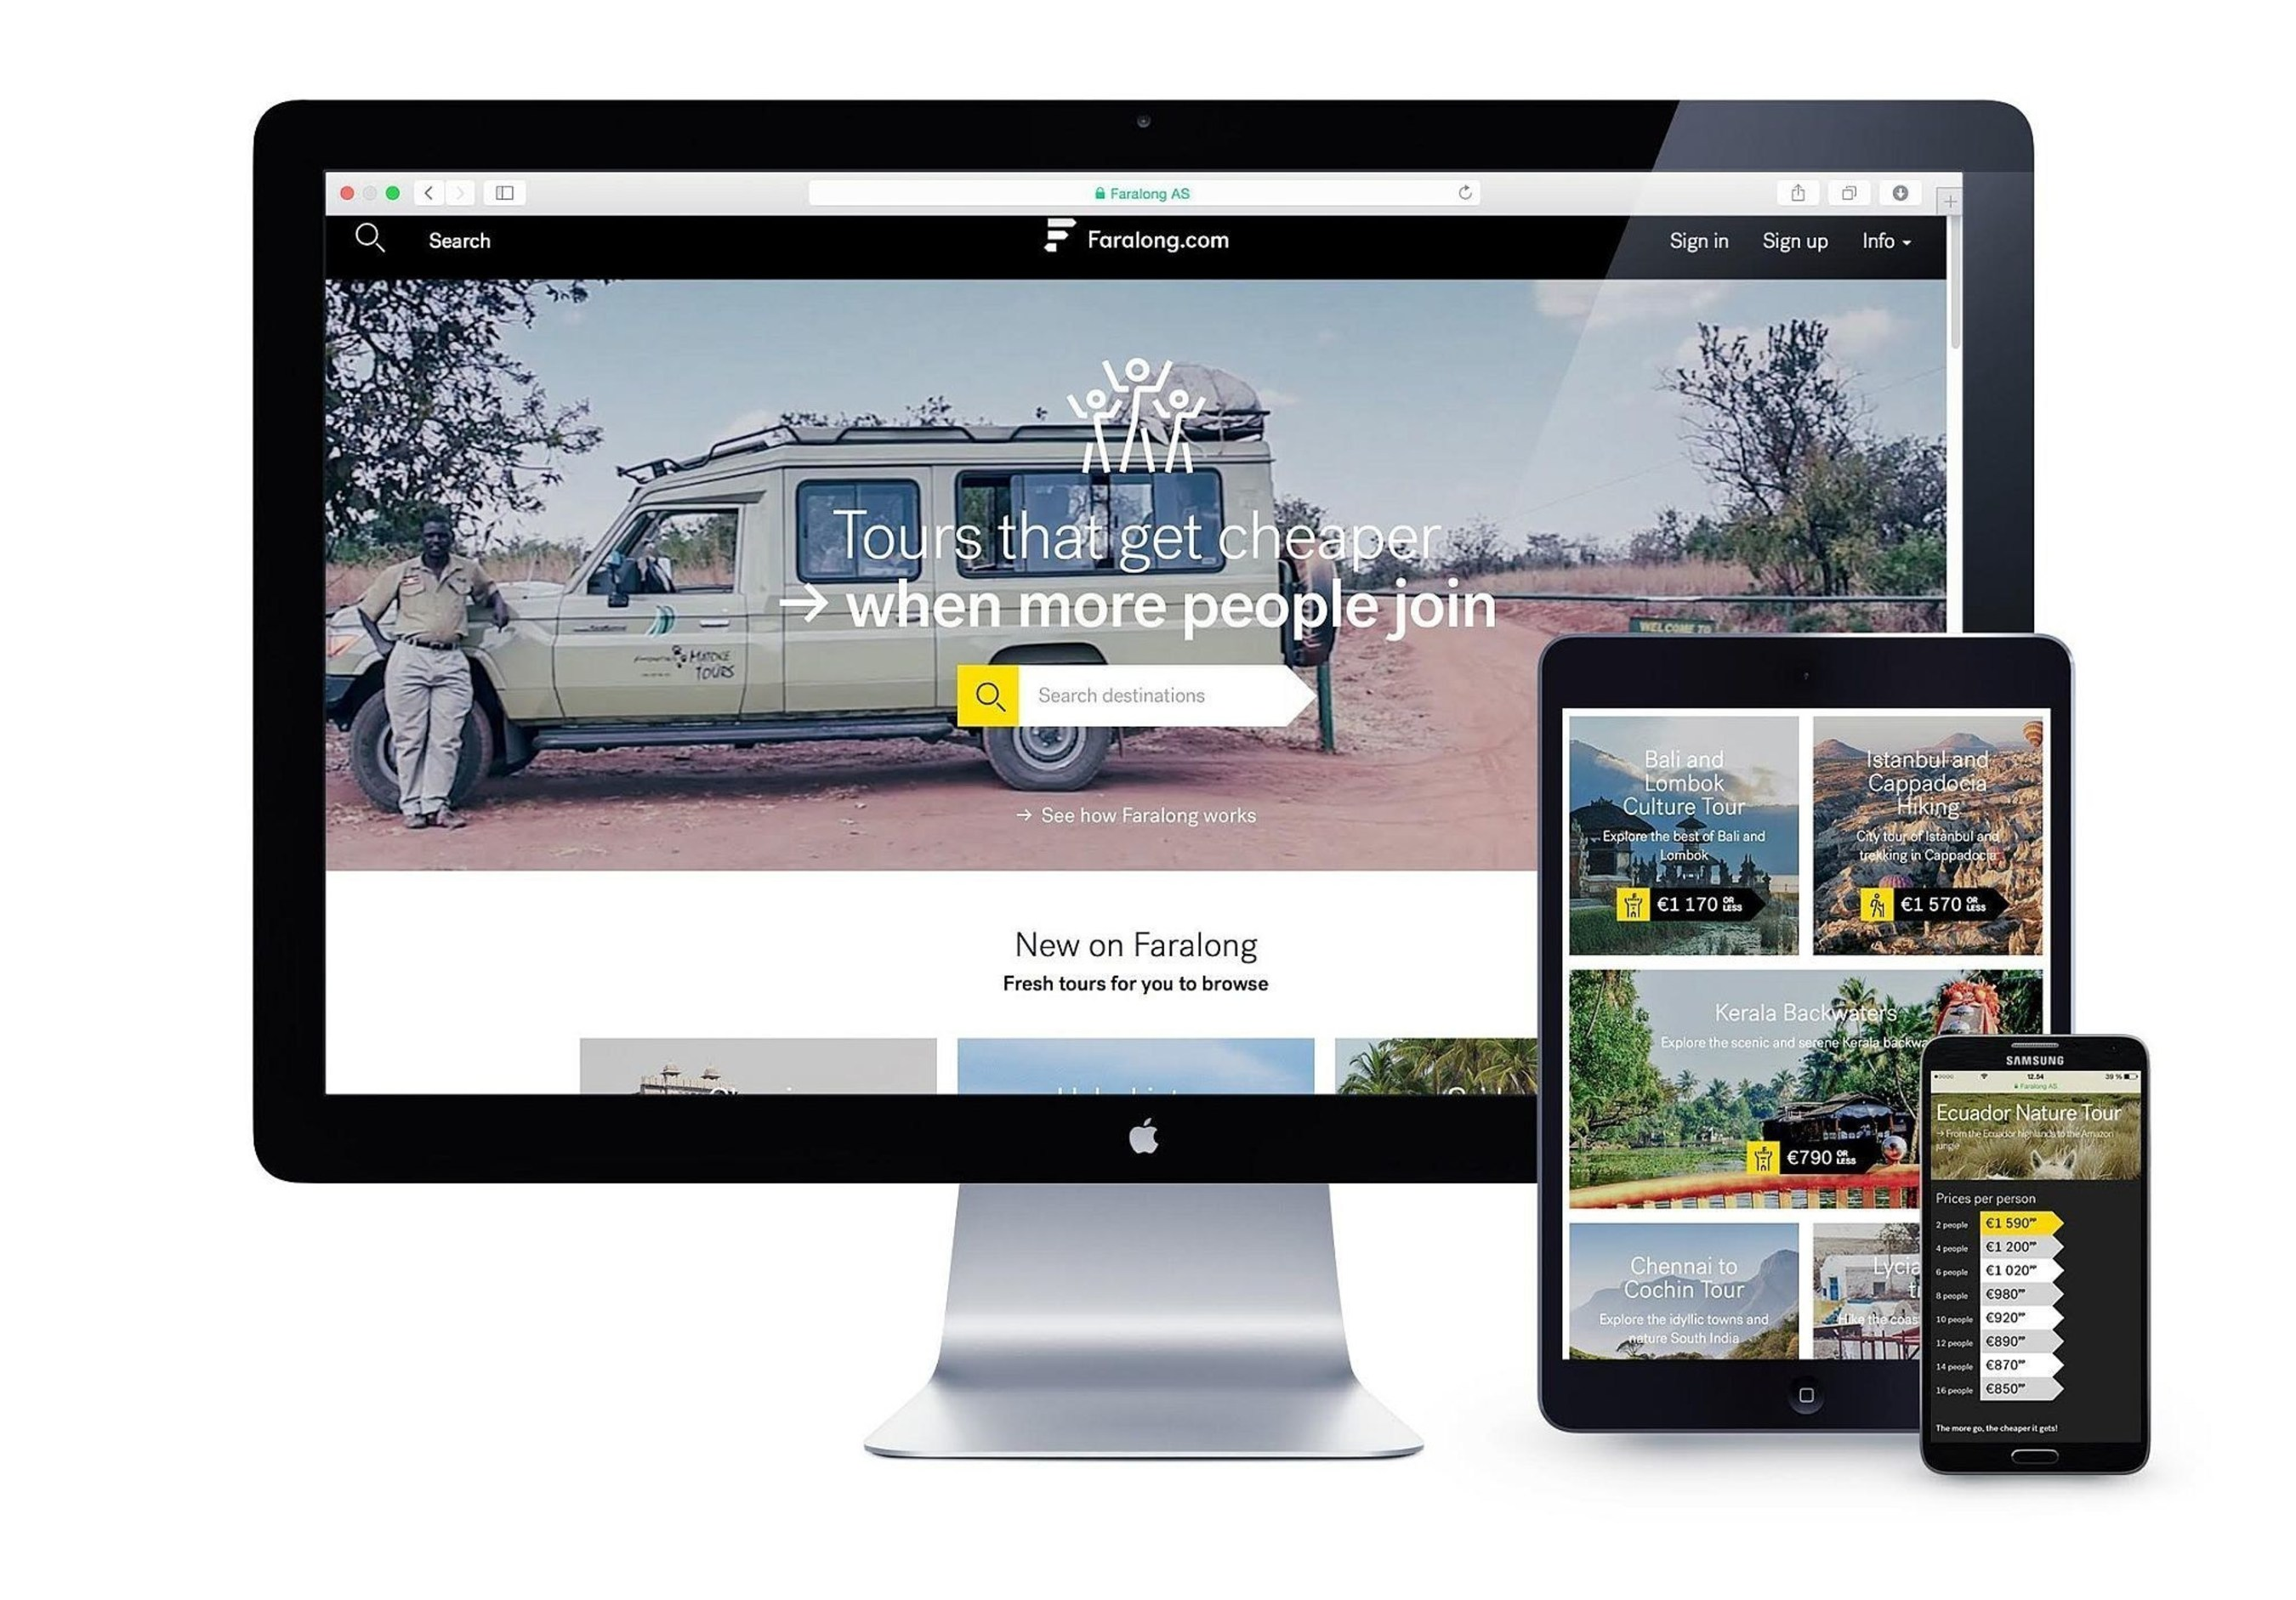 Faralong.com - A Revolutionary New Booking Platform Changing the Adventure Travel Industry